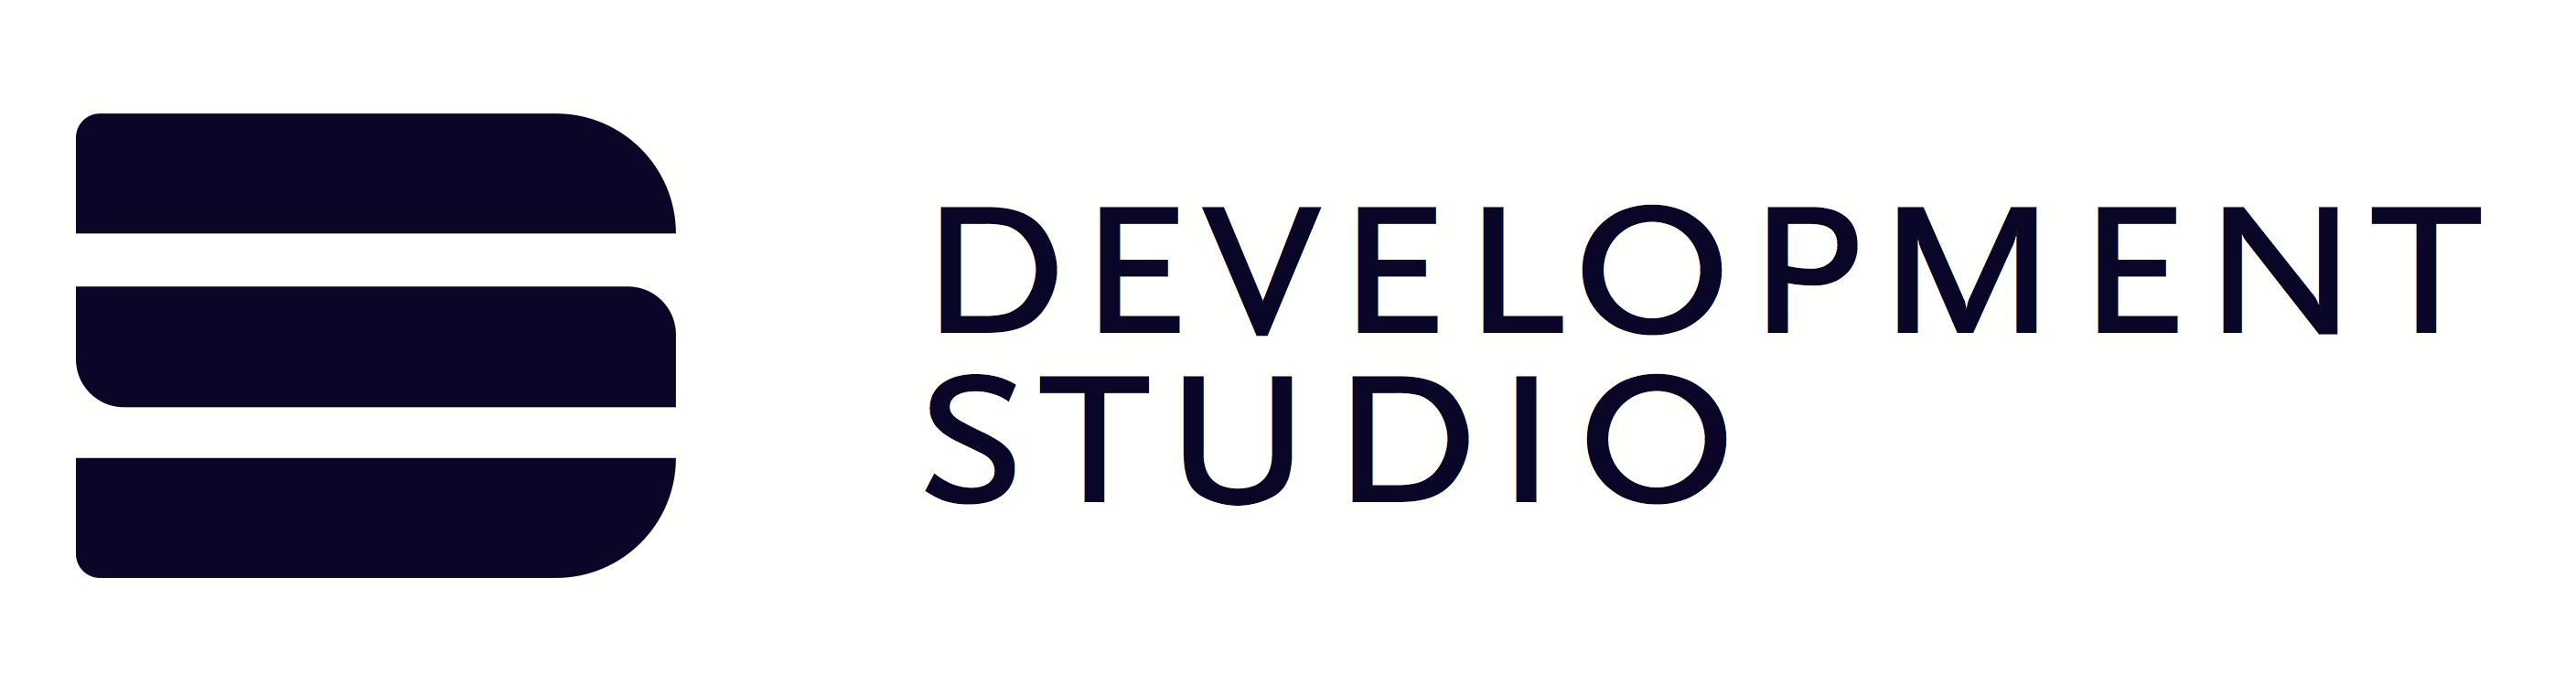 Developmentstudio Kevin van Cleef